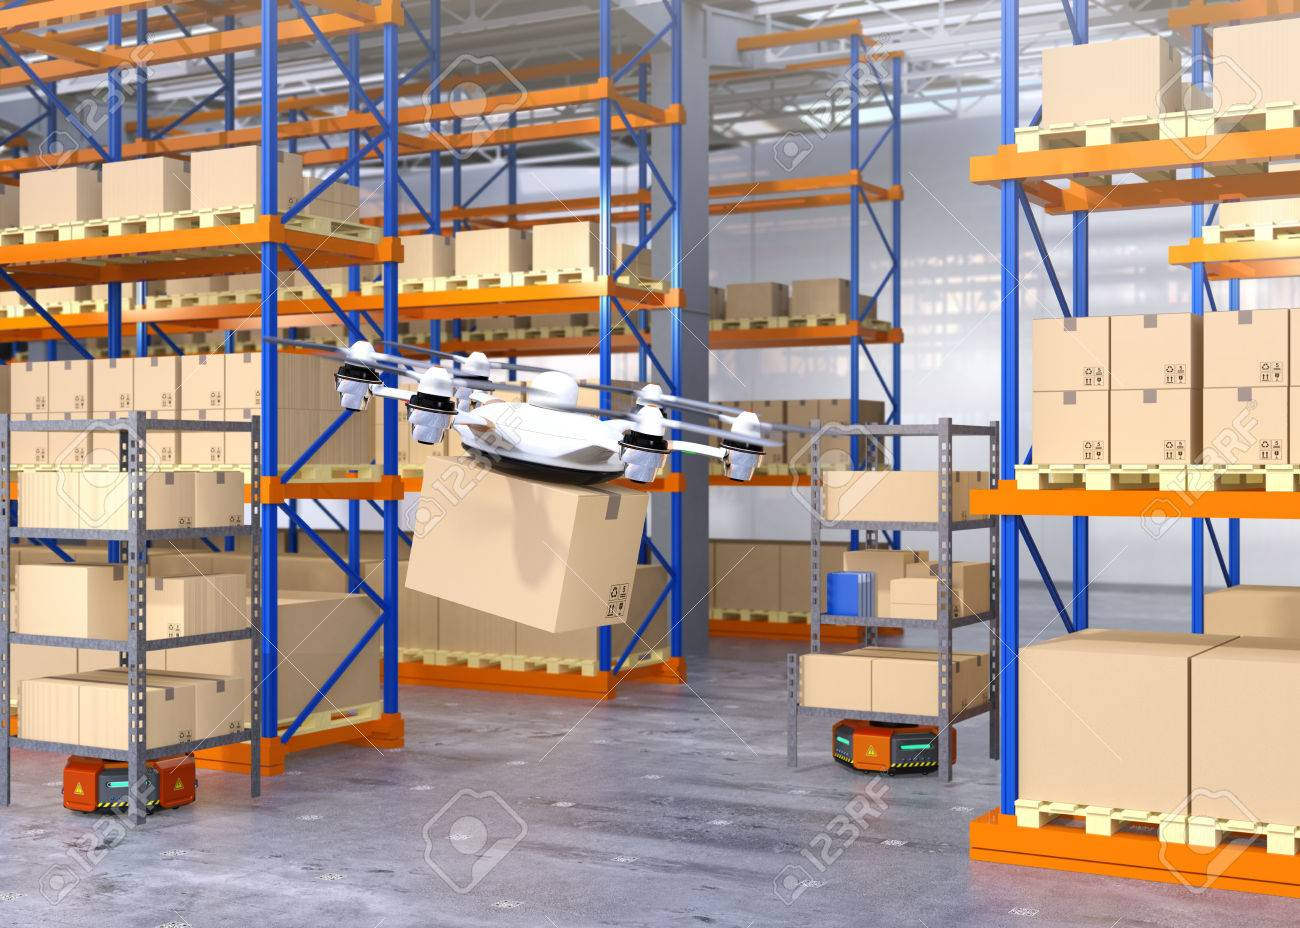 Drone and orange robots in modern warehouse  Advanced warehouse